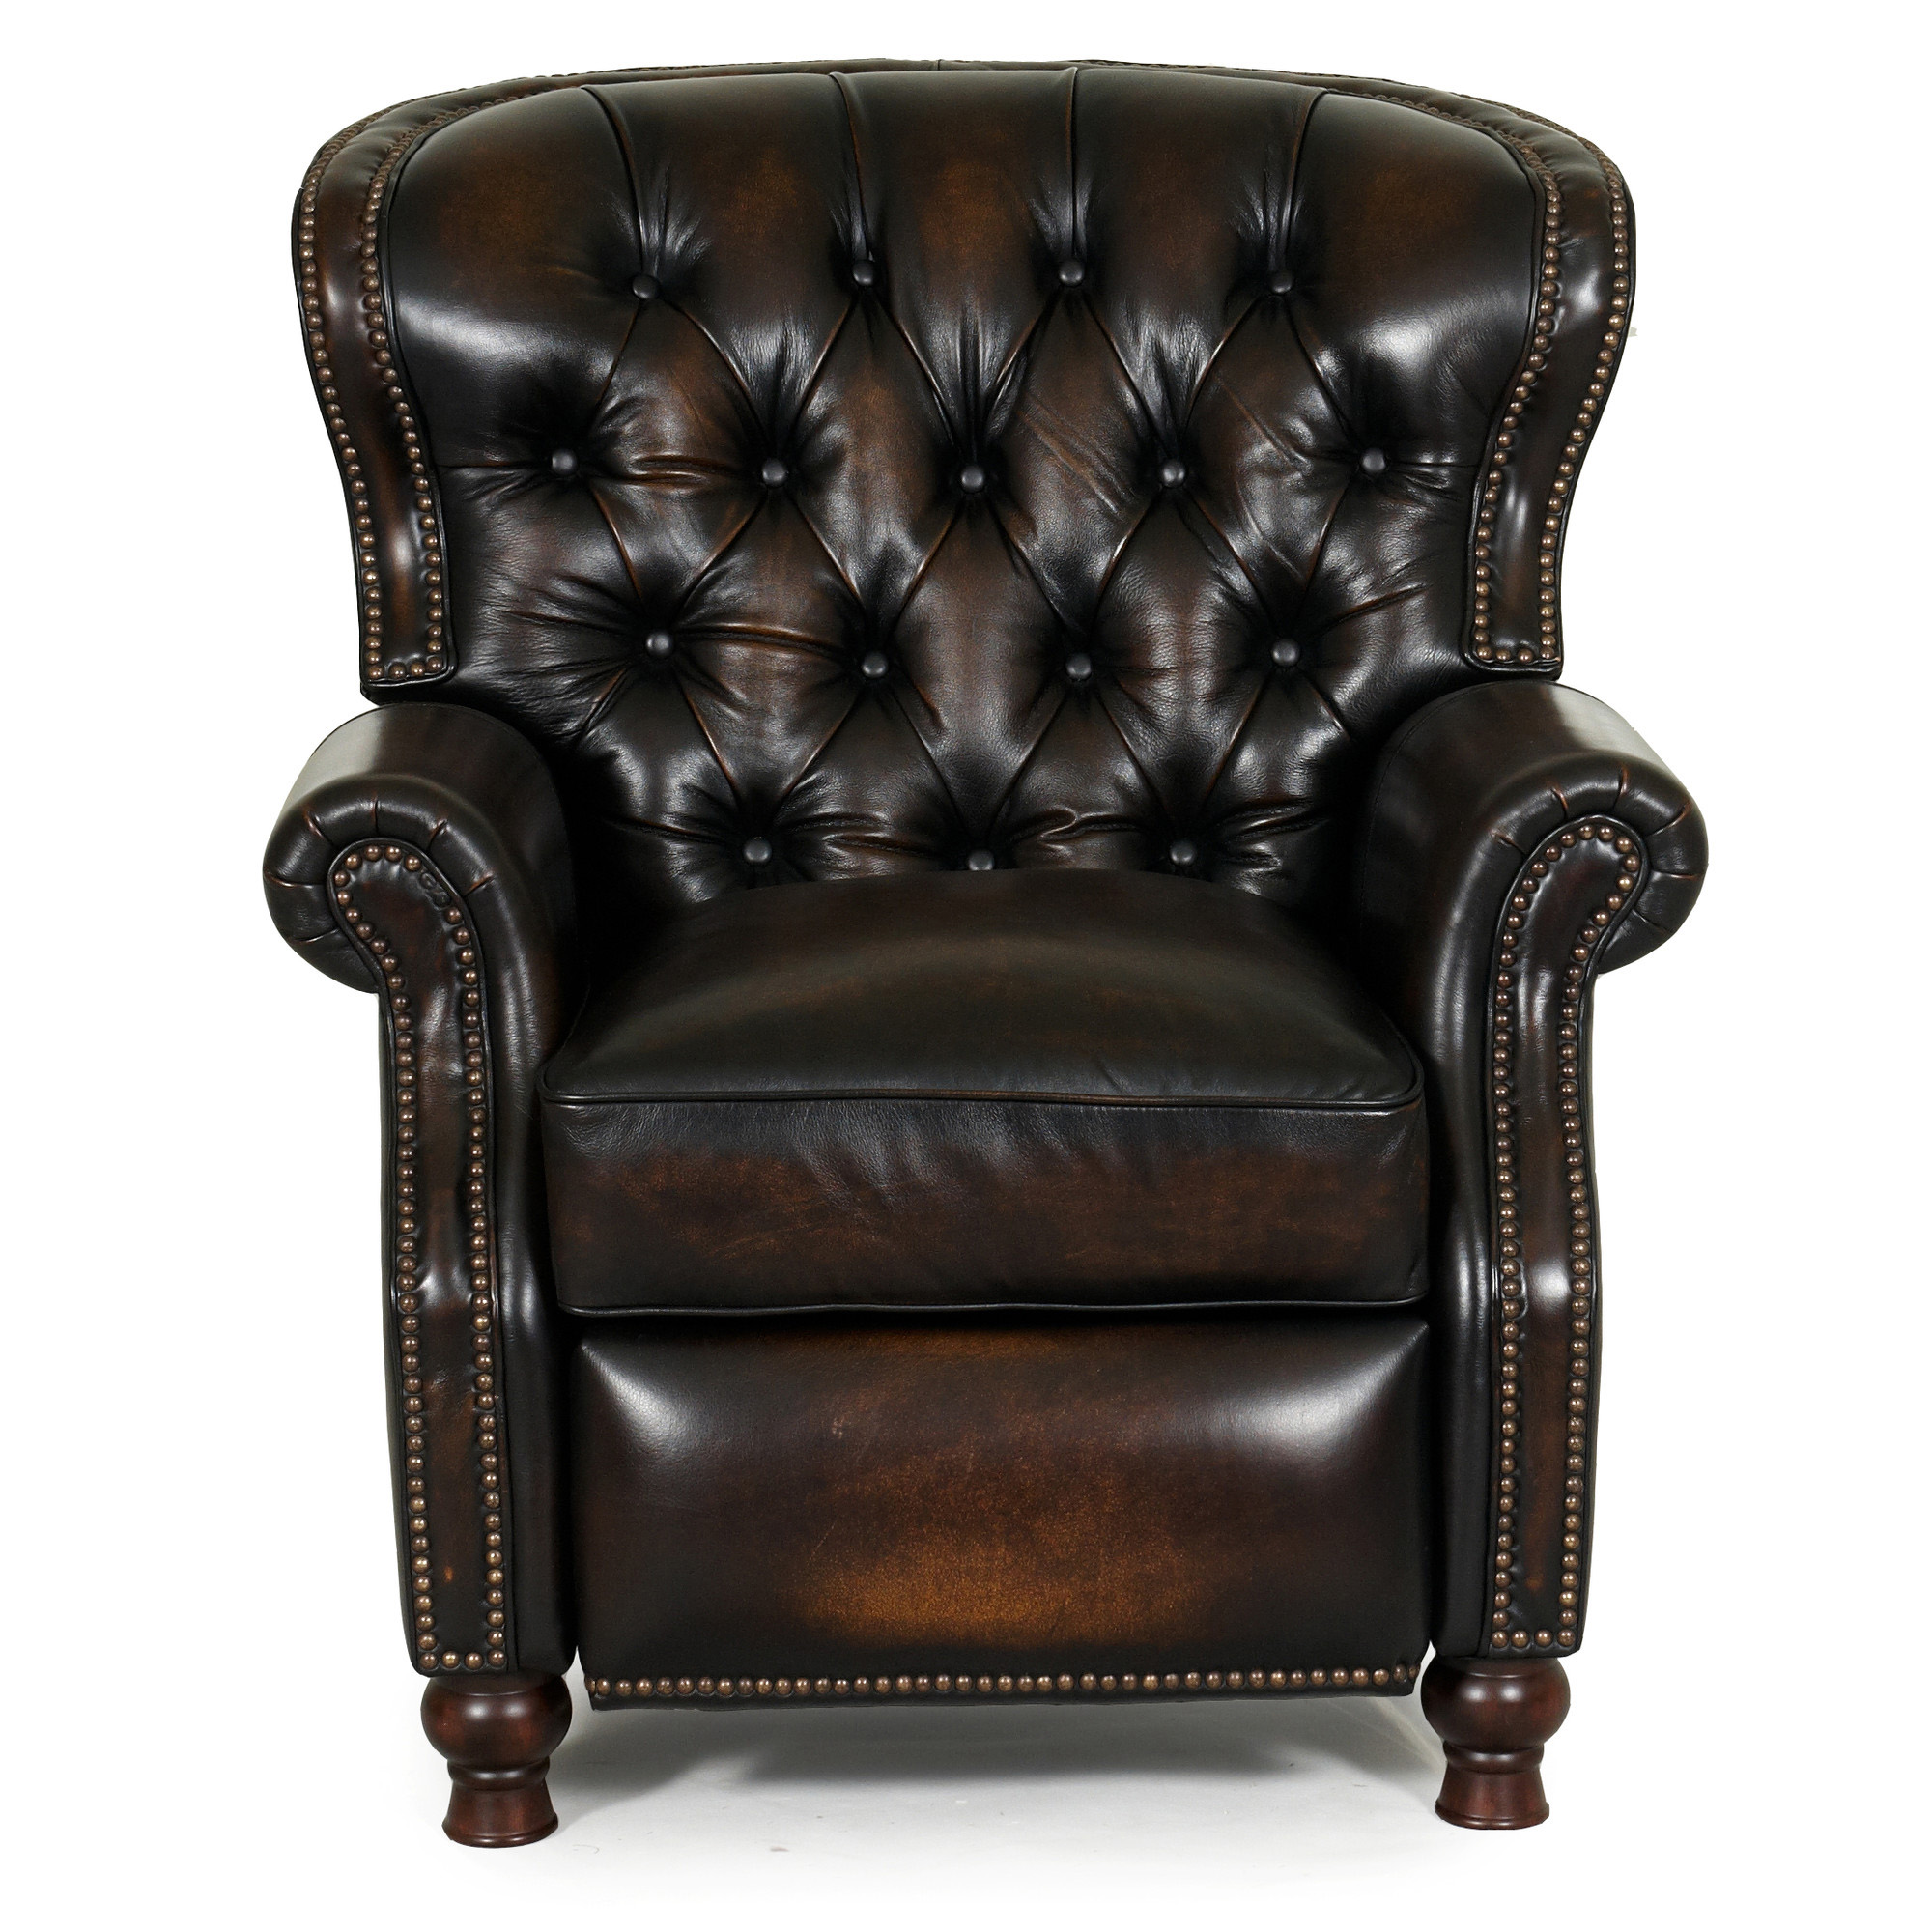 Barcalounger Presidential II Leather Recliner Chair - Leather ...